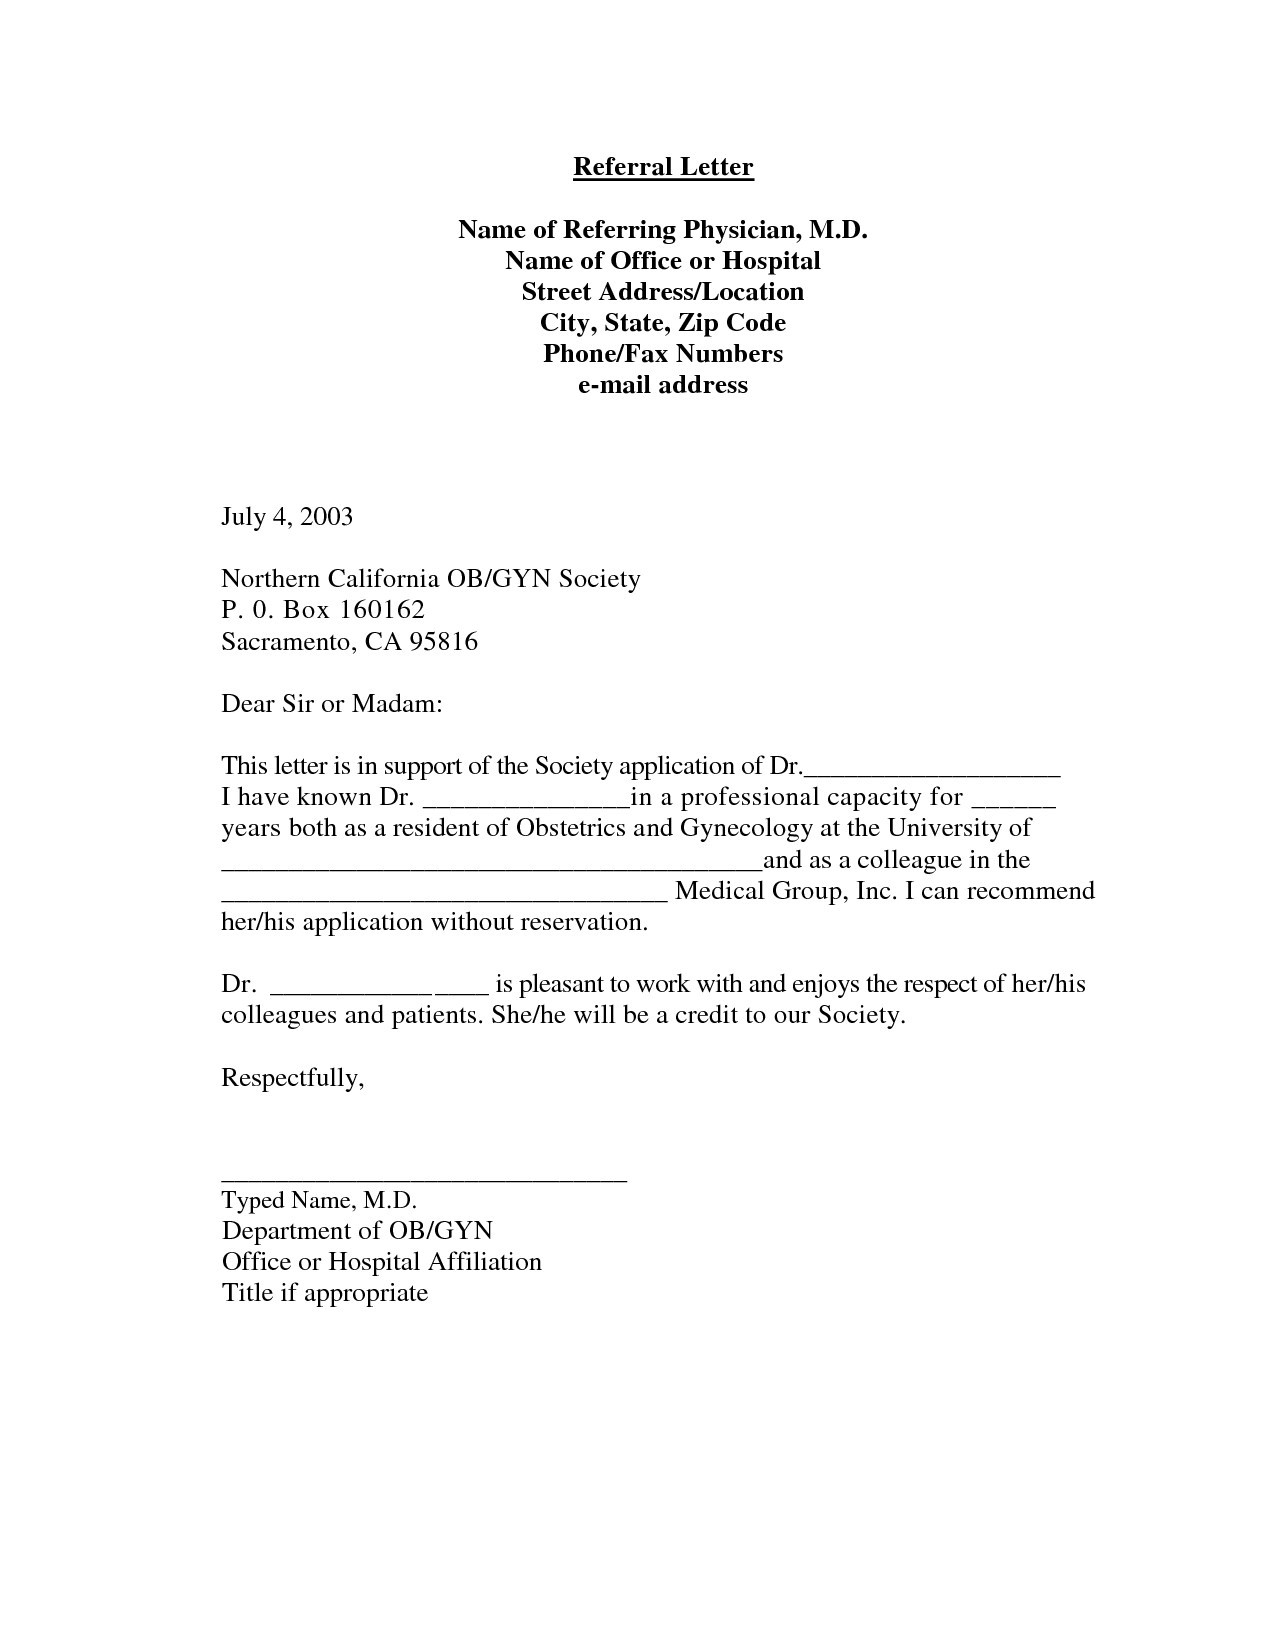 Medical Consult Letter Template - Re Mendation Letter Template Medical Residency Copy Sample Medical